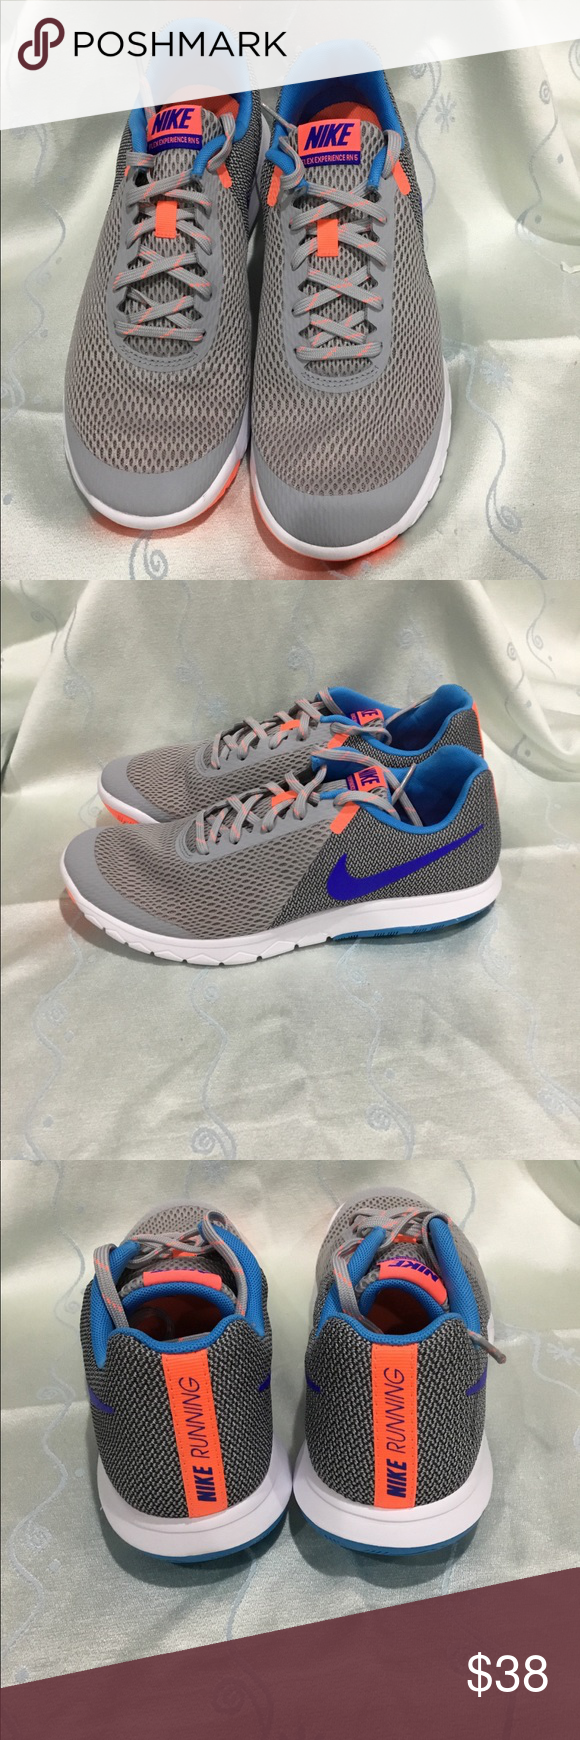 df0720f3093 Nike Women s Flex Experience RN 5 running shoes Brand new Nike Women s Flex  Experience RN 5 running shoes. Color  wolf grey racer blue. Nike Shoes  Athletic ...